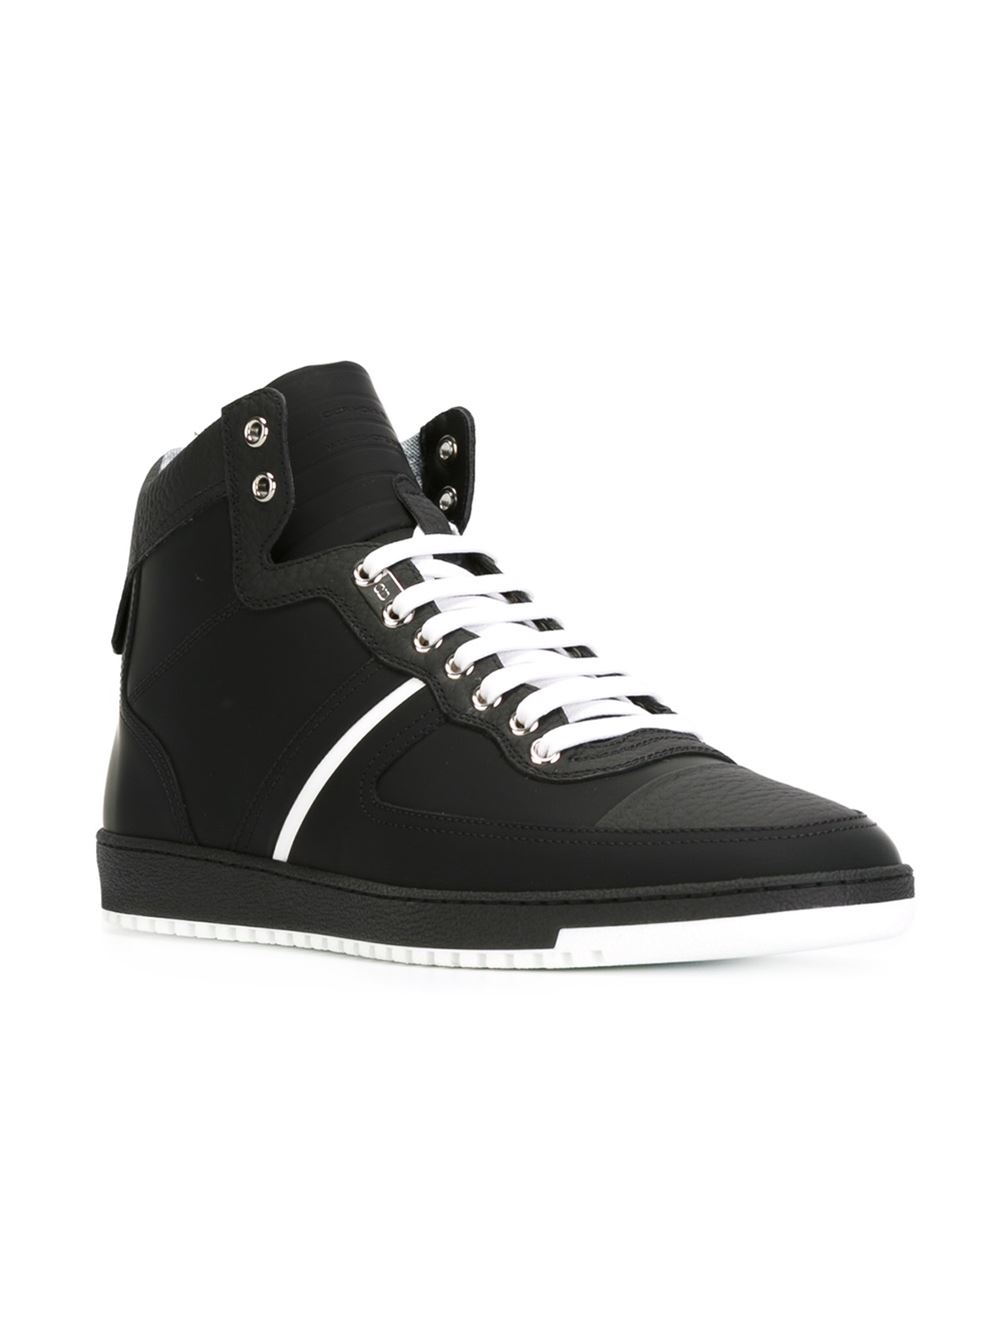 6e3dd5030a9f4 Lyst - Dior Homme Contrasting-Stripe High-Top Sneakers in Black for Men